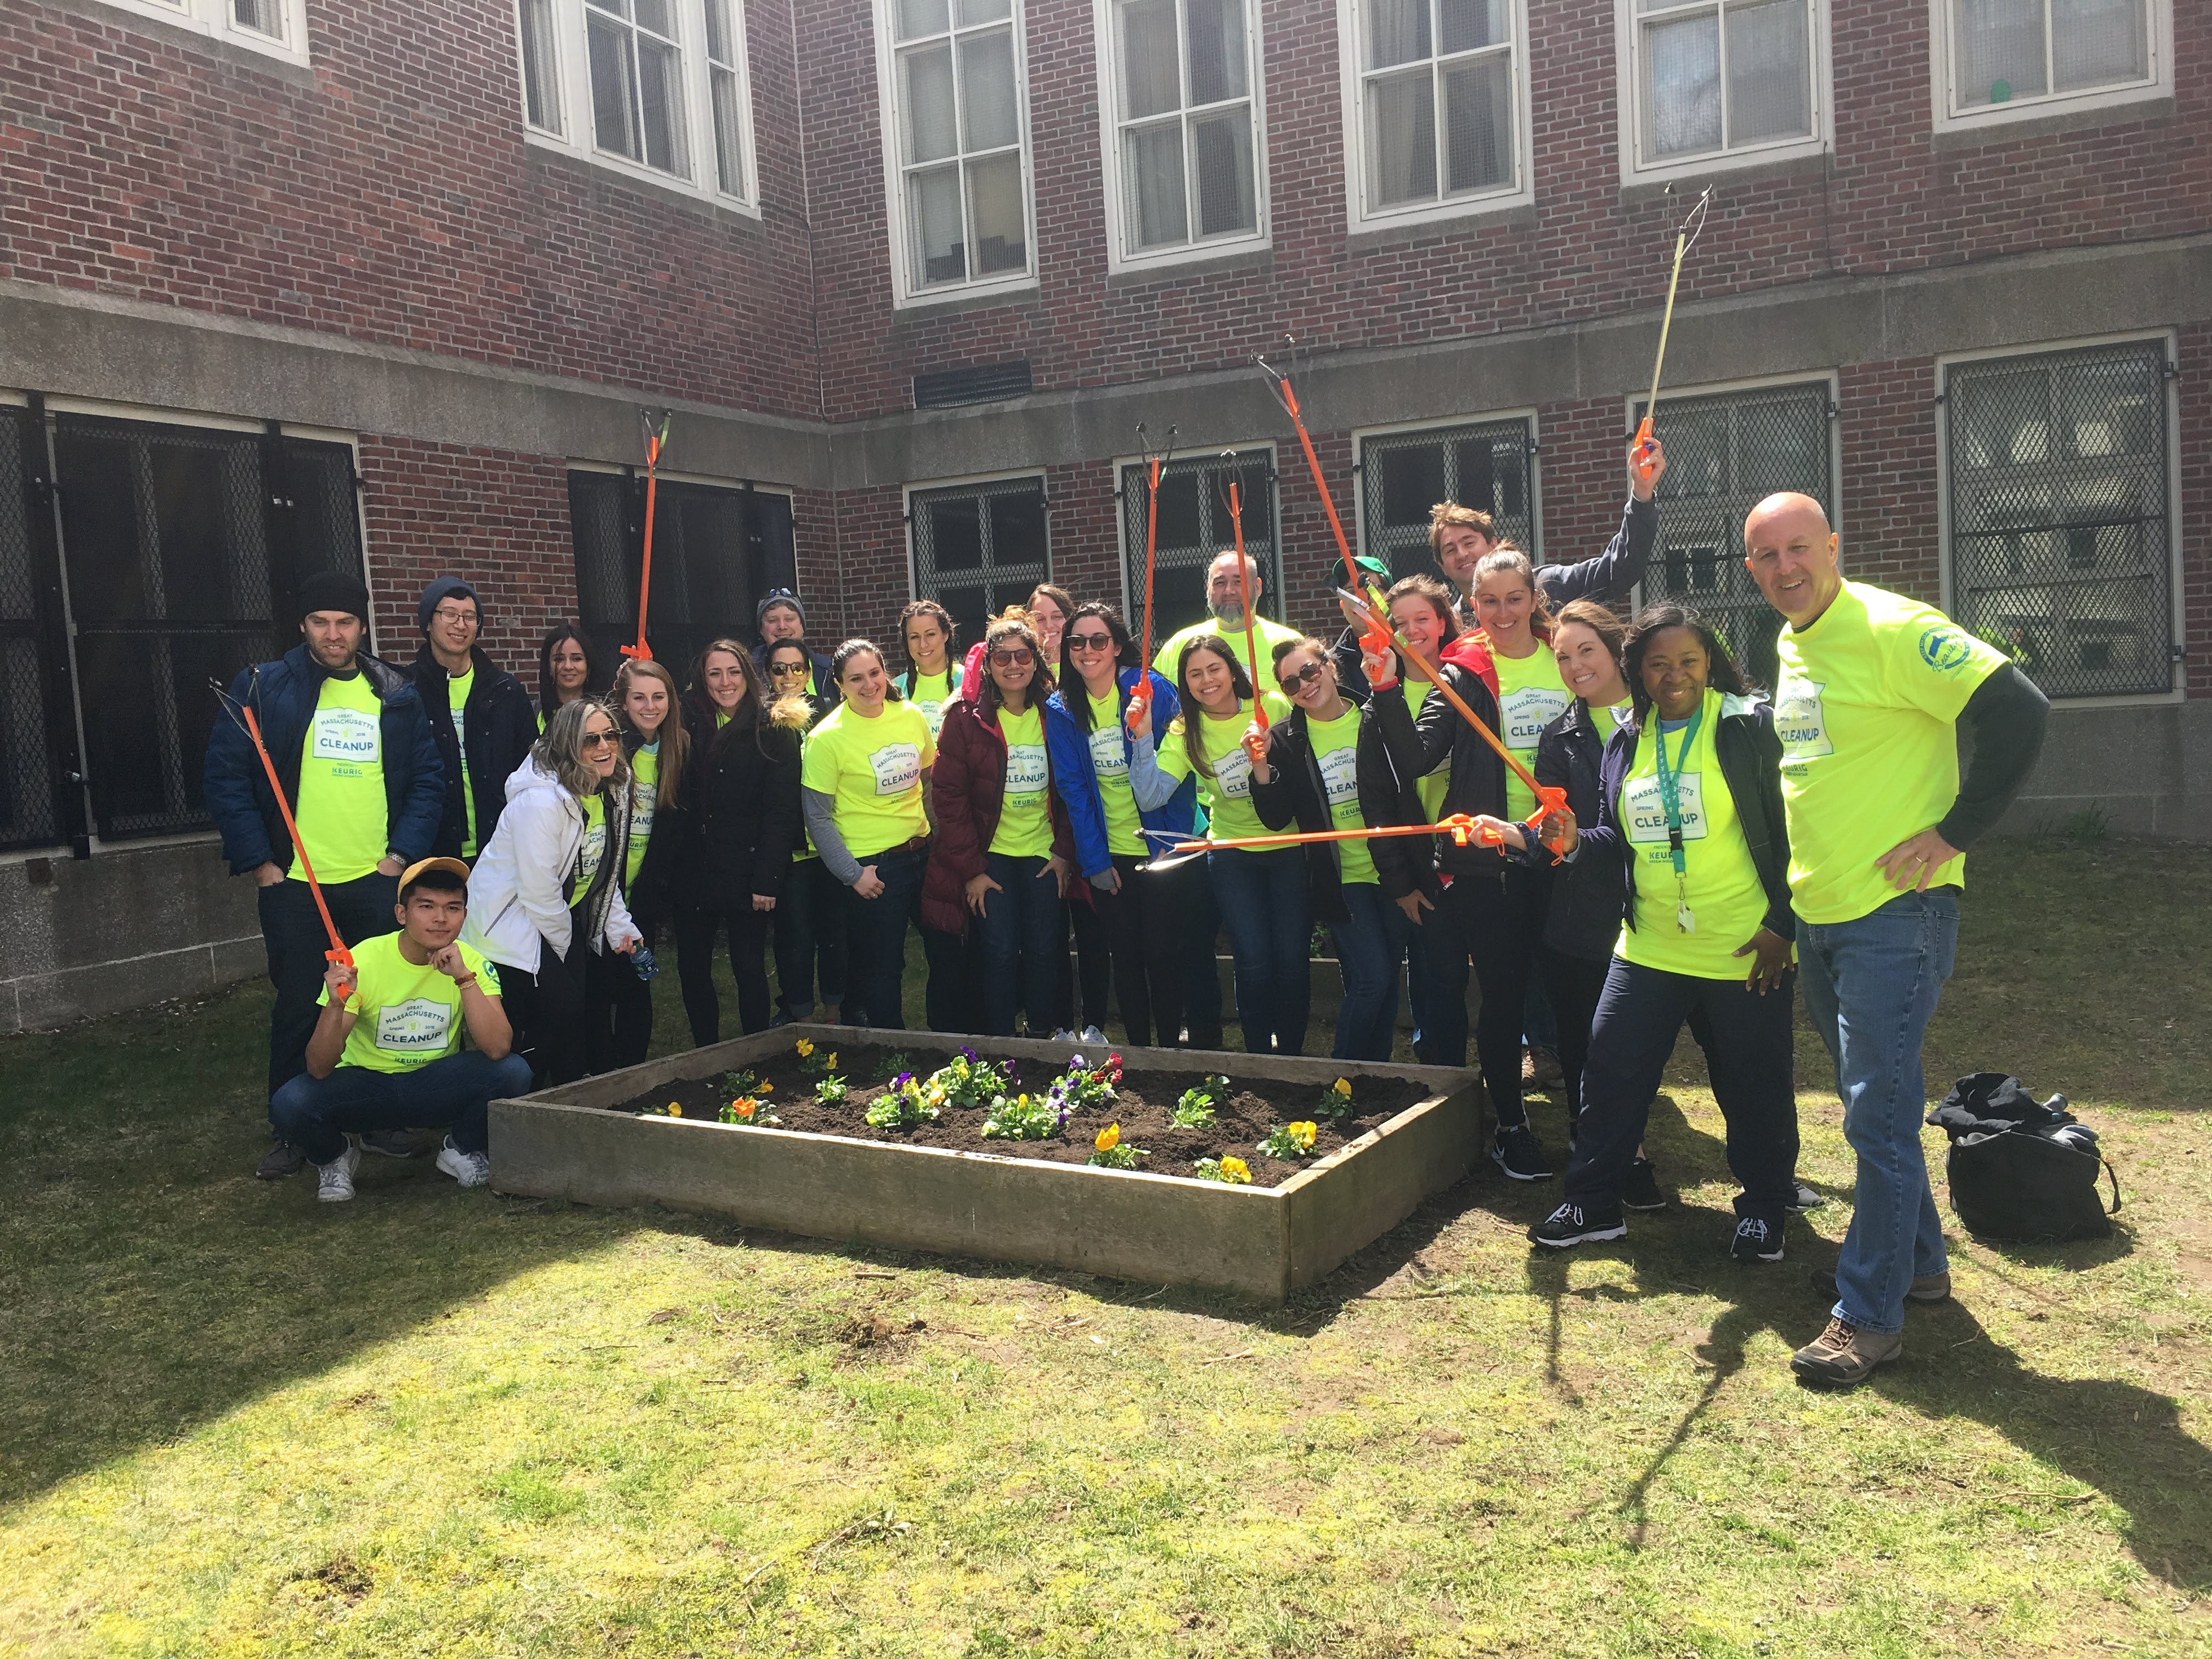 Trip Advisor Volunteers Spruce Up Dorchester School